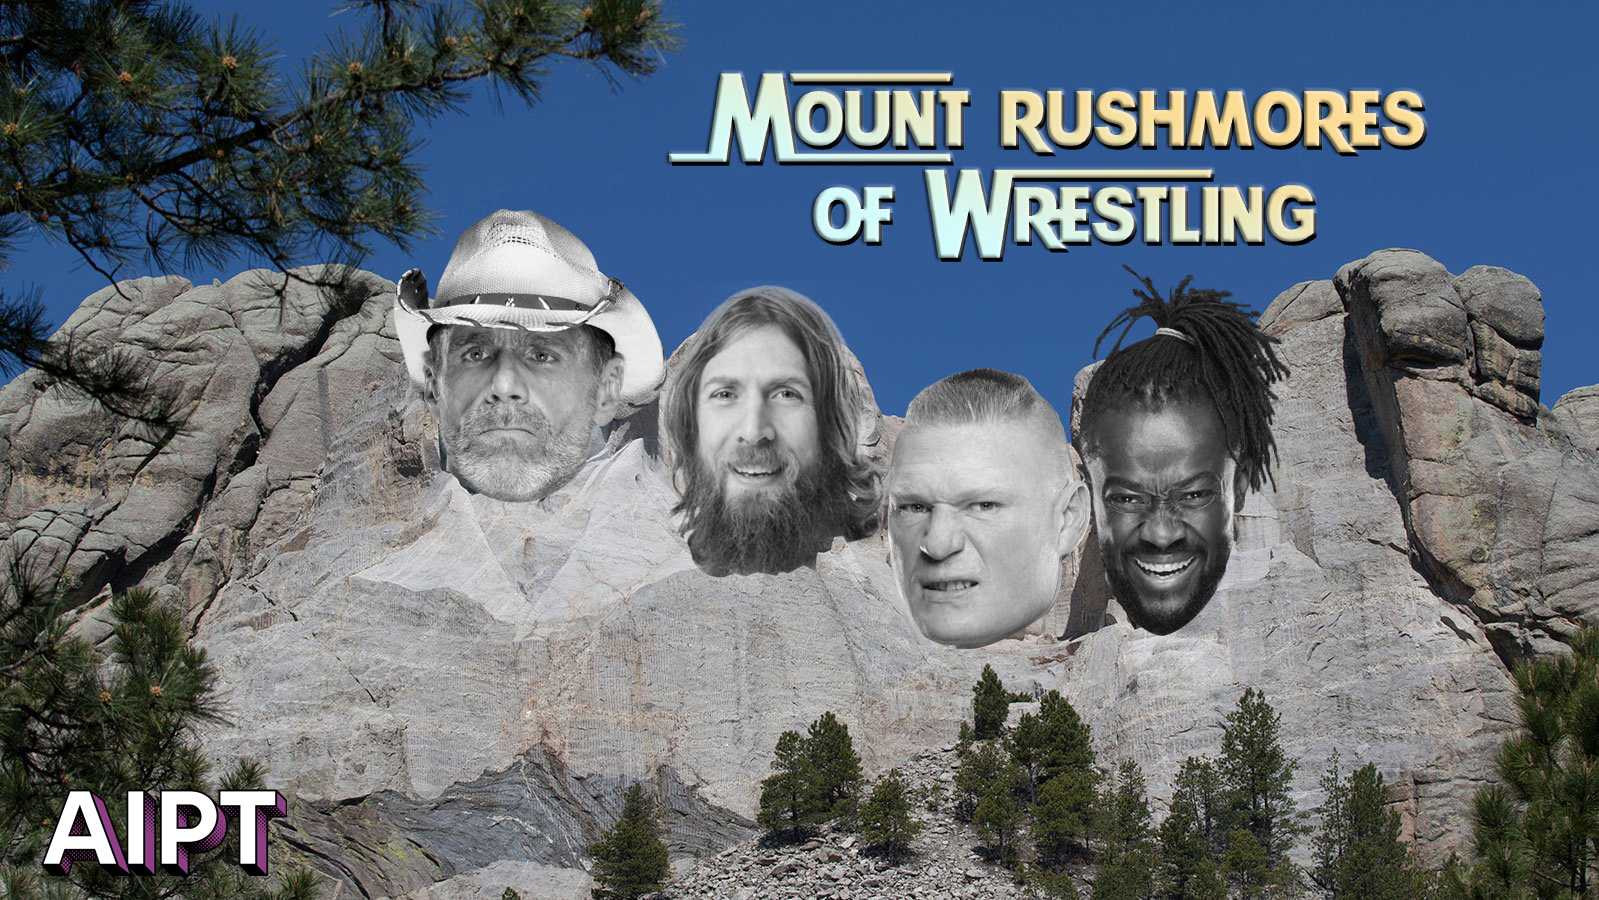 Mt. Rushmores of Wrestling: WrestleMania moments